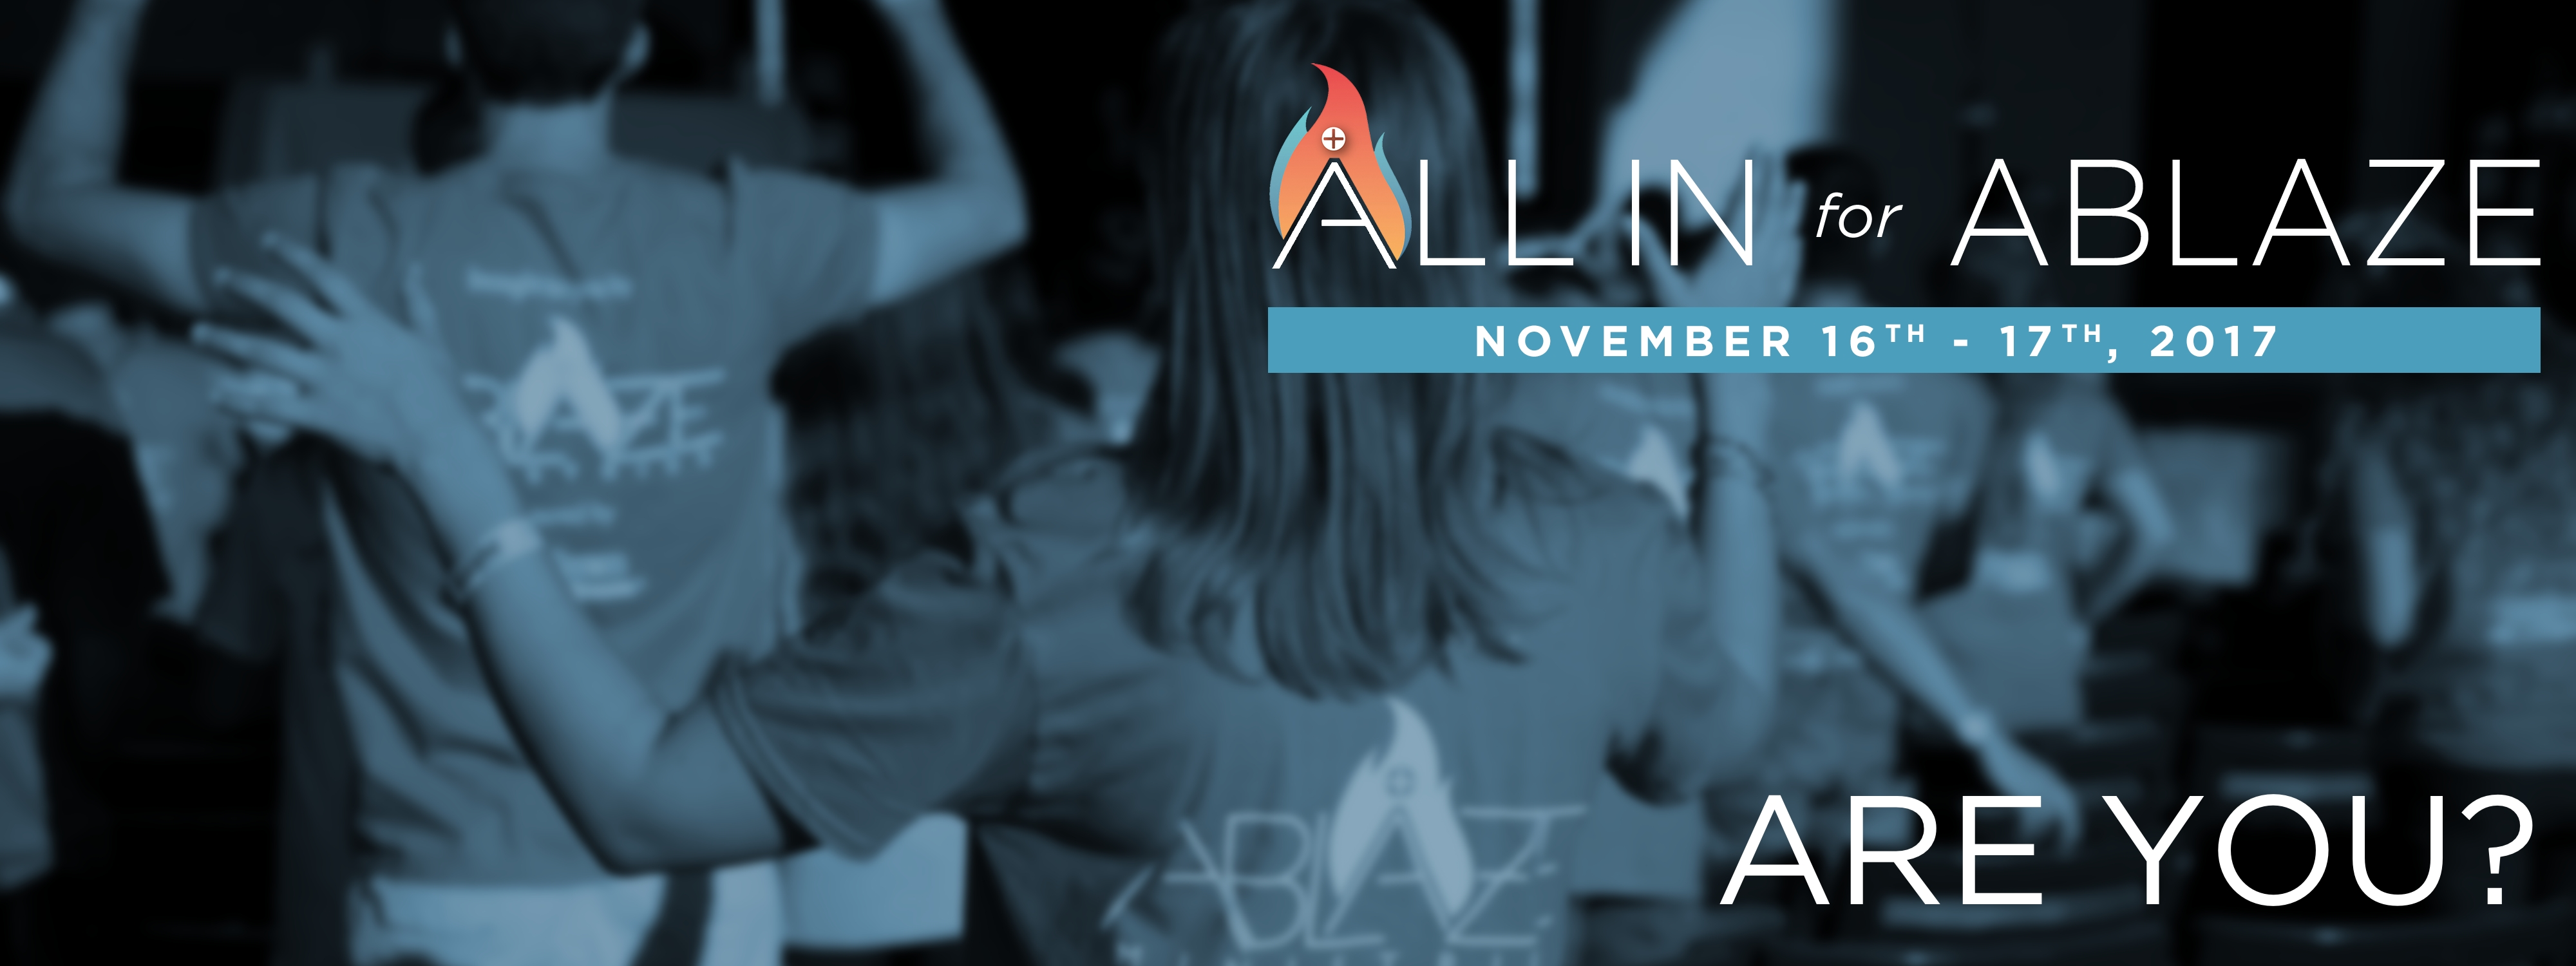 all in for ablaze 2017